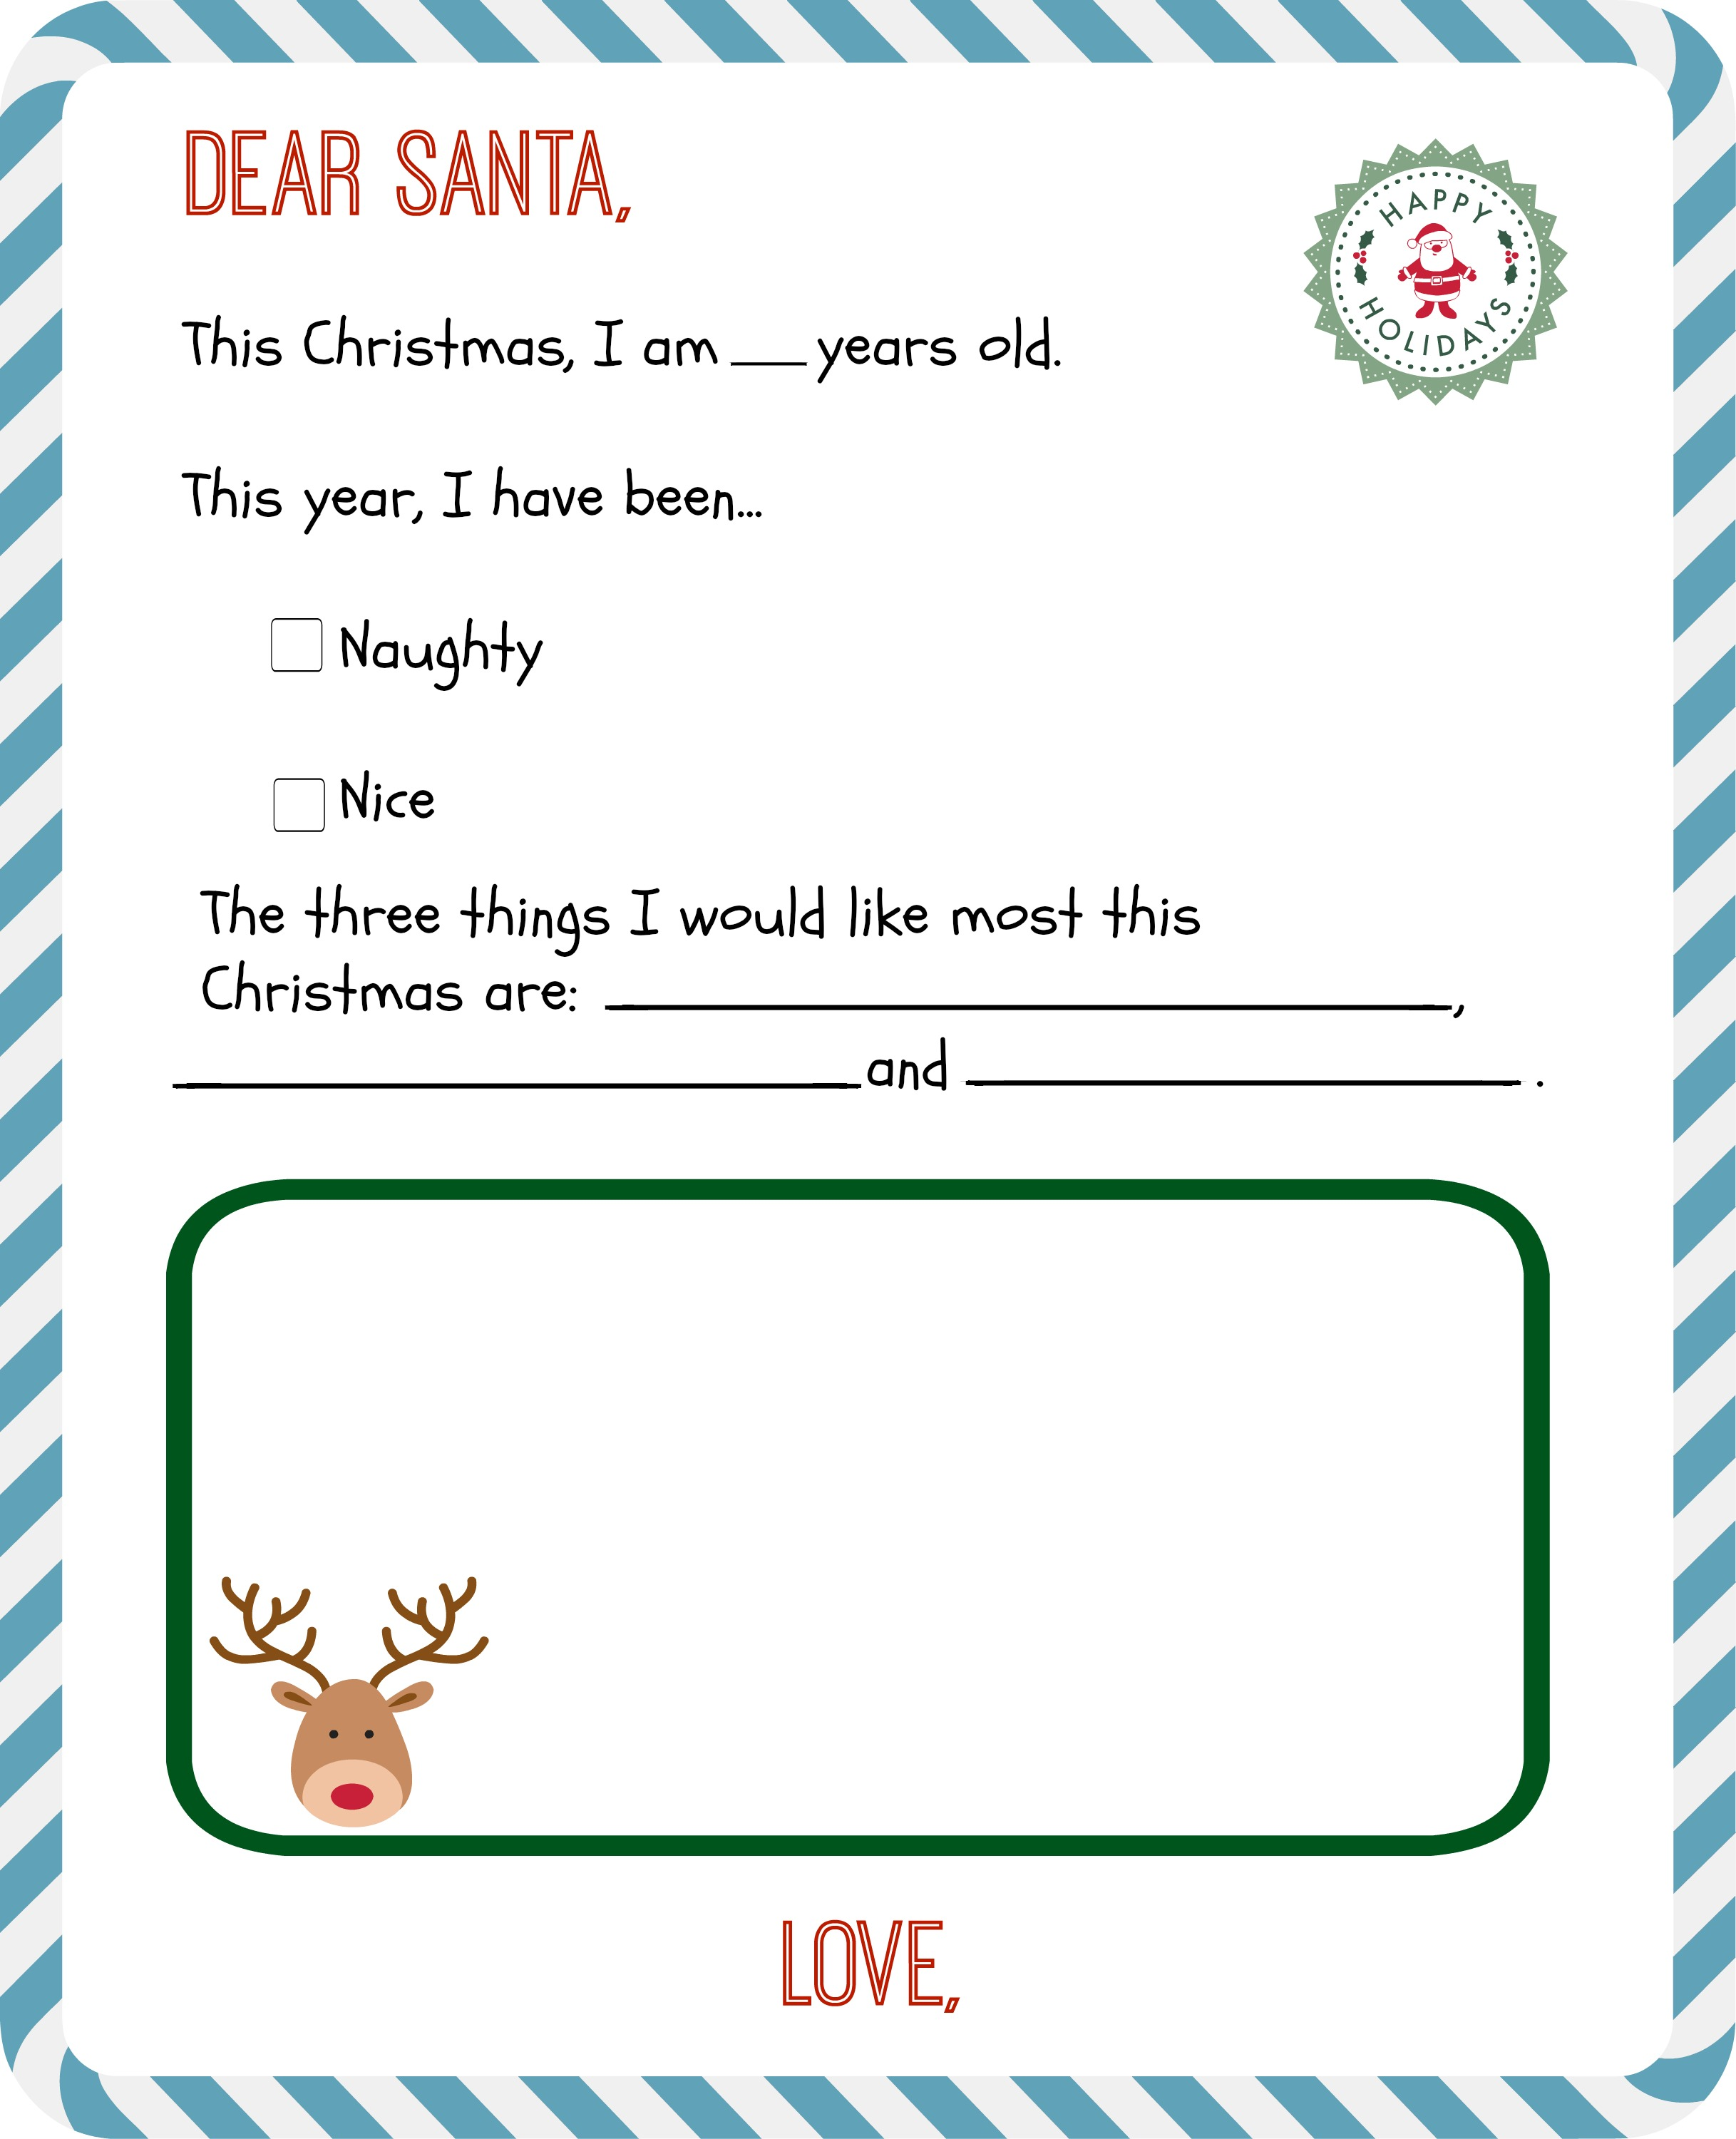 Santa List Template Free Inventory Templates Payslip Format Download  Christmas Letter To Santa Template4 Santa List